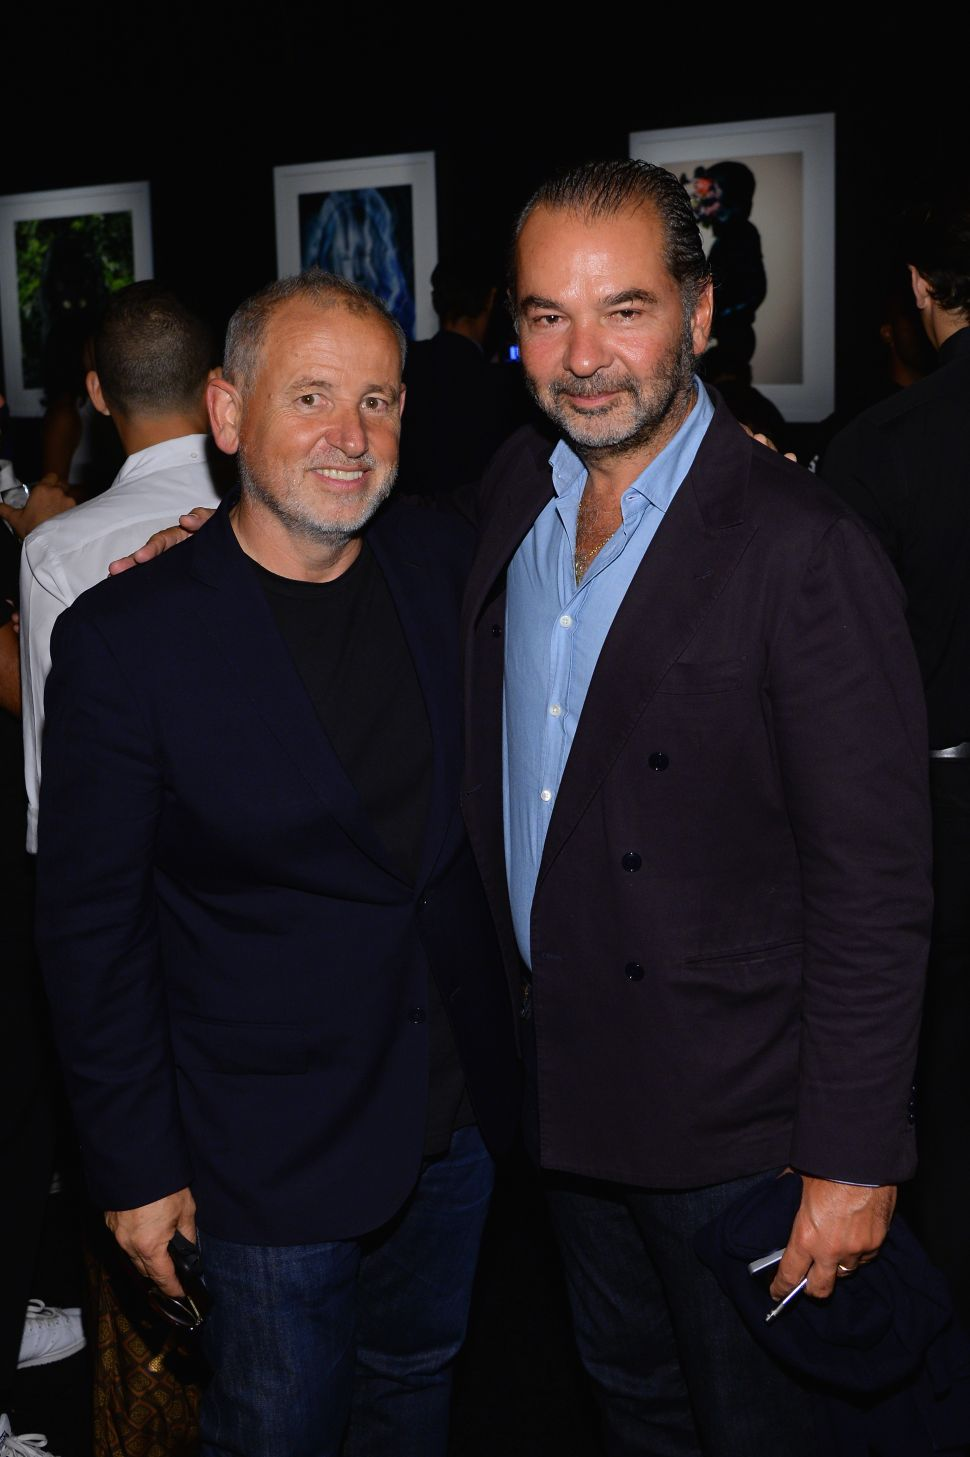 Art Director Fabien Baron, Chairman and Creative Director of Moncler, Remo Ruffini (Photo: Andrew Toth for Getty Images).